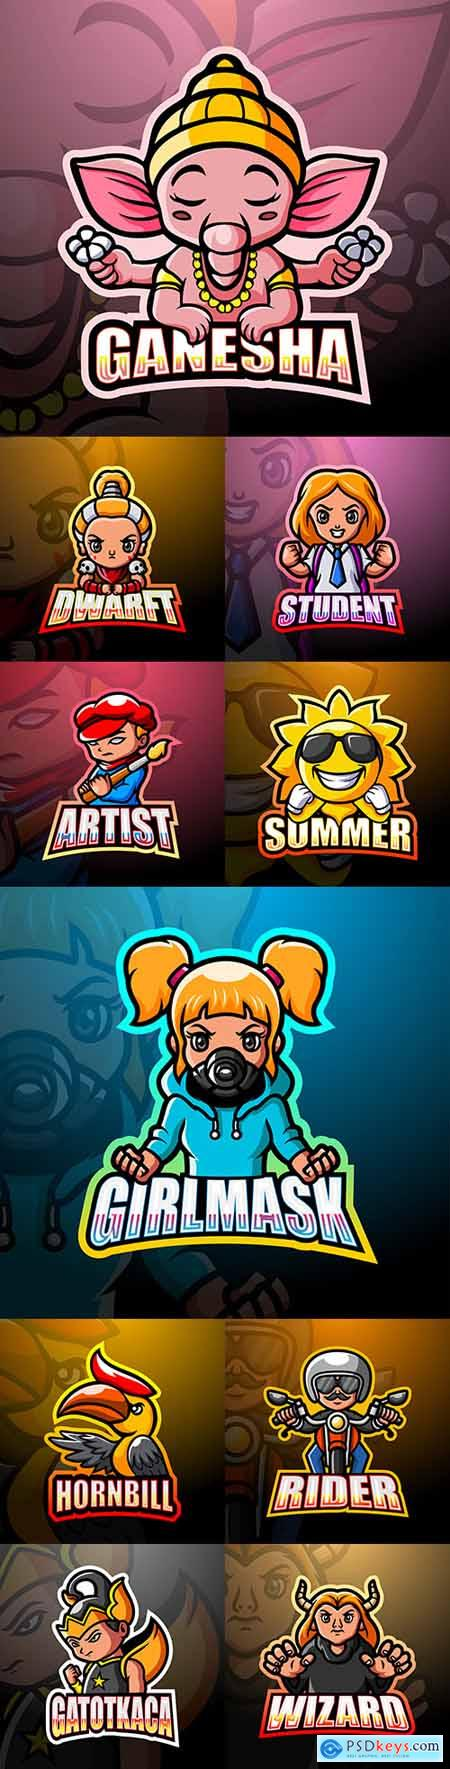 Emblem gaming mascot design cybersport illustration 23